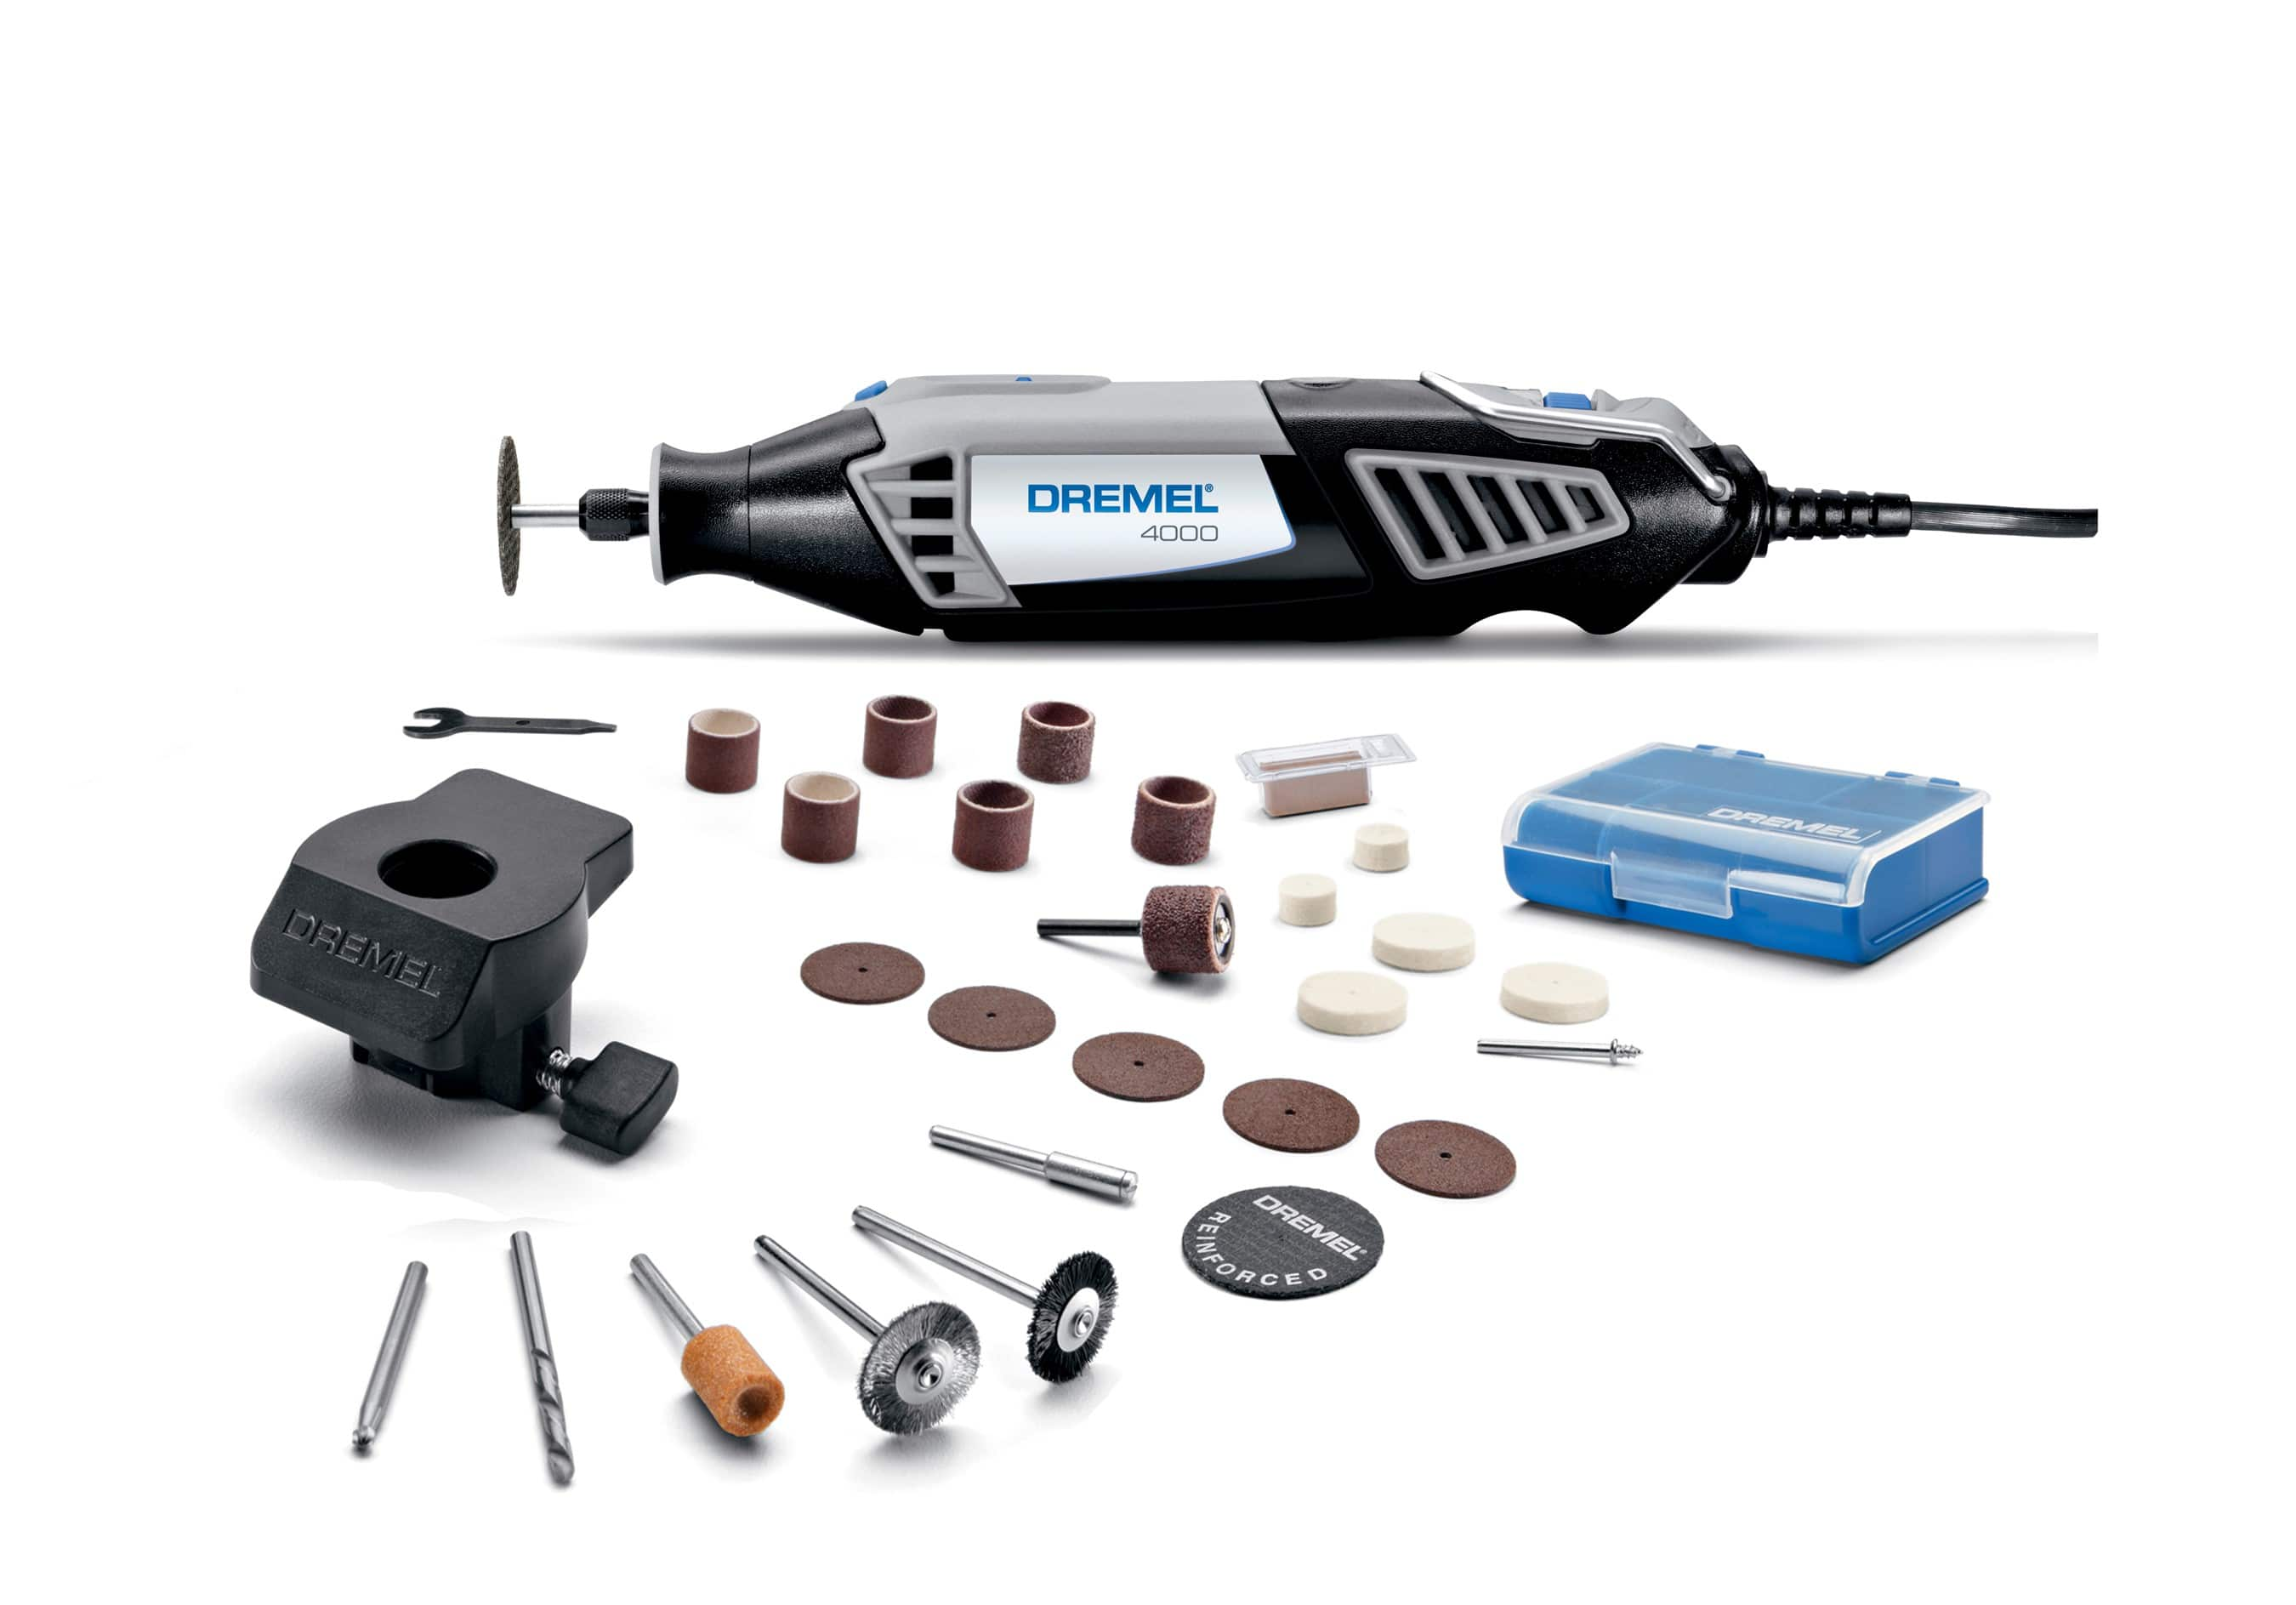 Dremel 4000-1/26 1.6 Amp Corded Variable Speed Rotary Tool, 1 Attachment And 26 Accessories $48.88